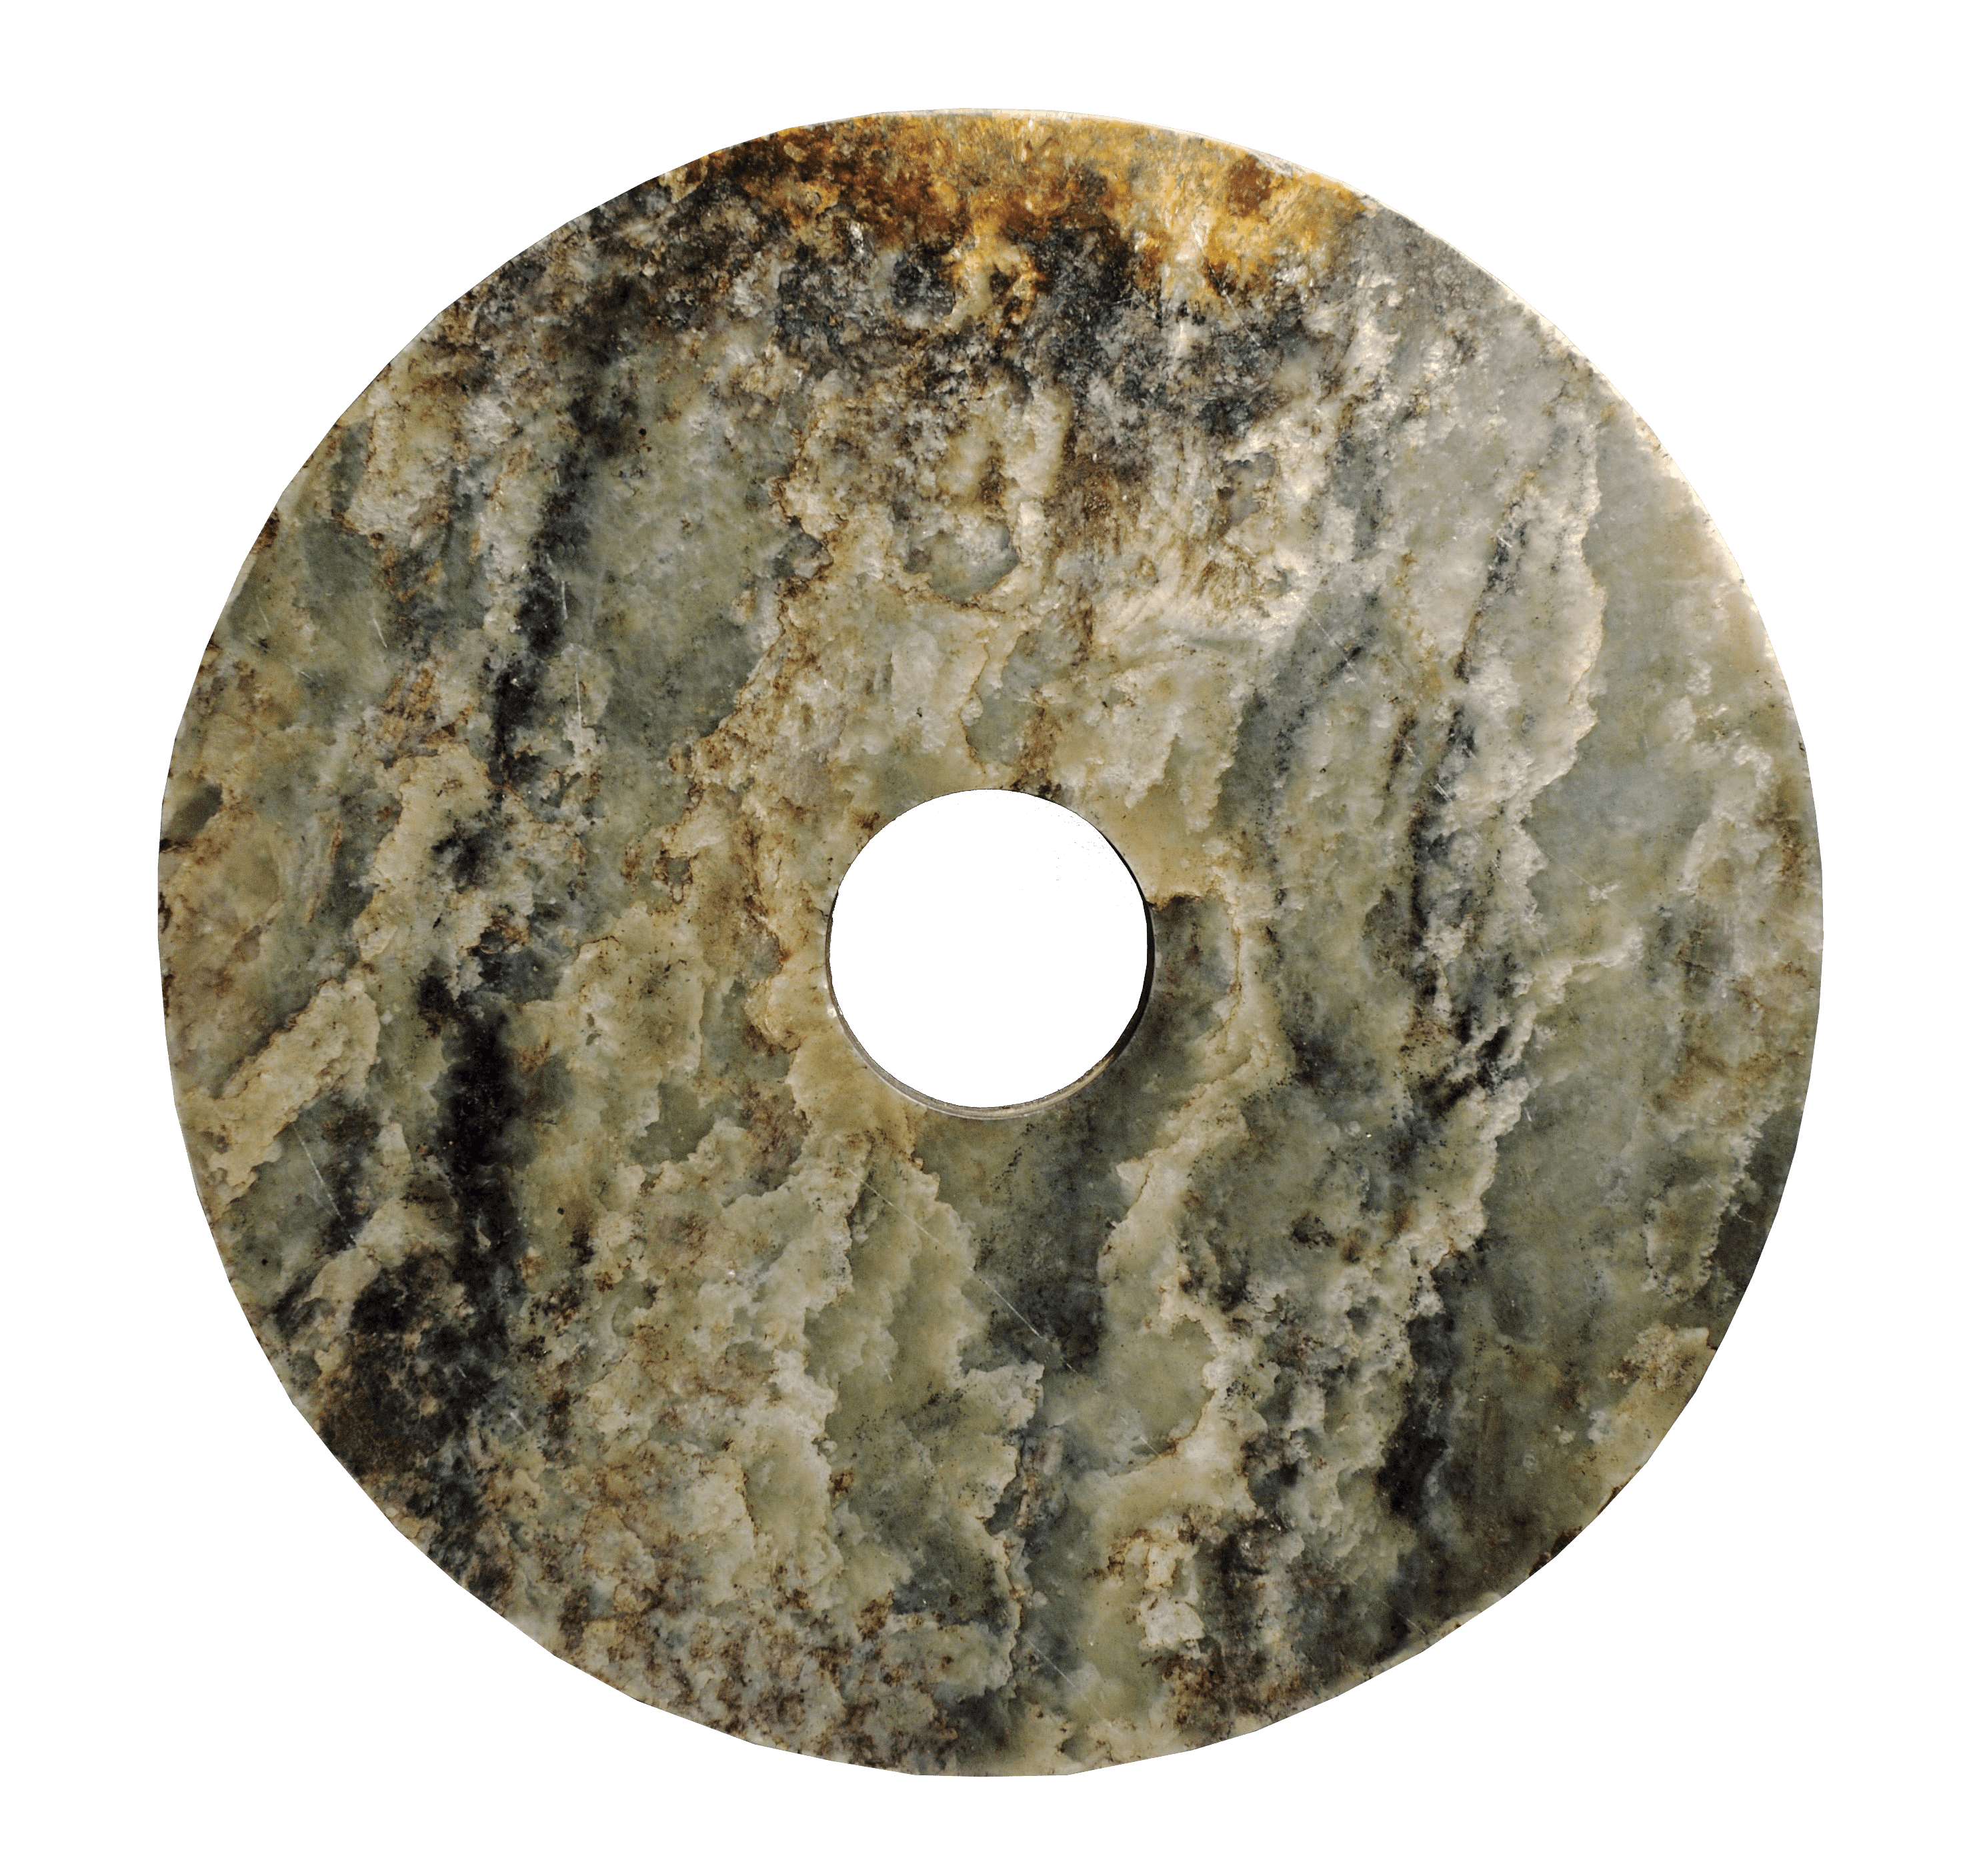 Liangzhu Neolithic Bi Disk, 2200 BCE — Prehistory, Private Collection